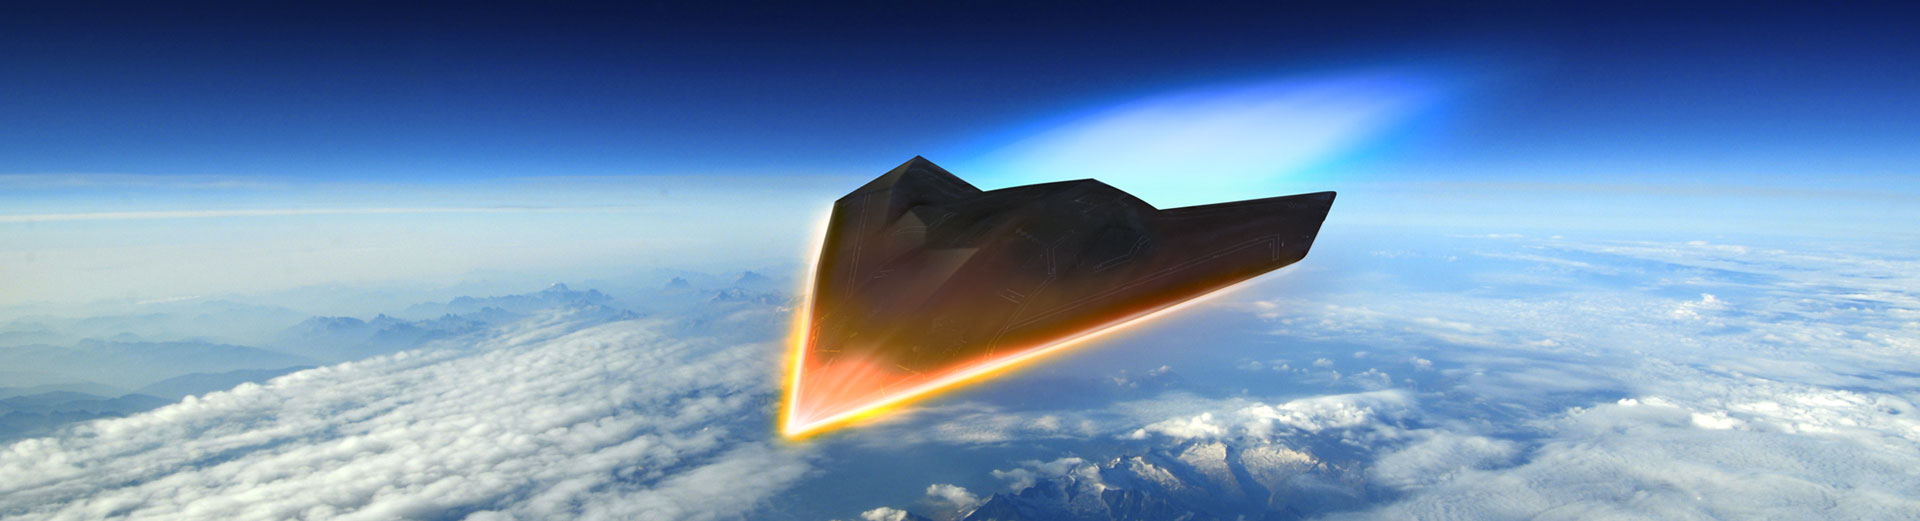 Scramjet-Powered Hypersonic Missile - European Security